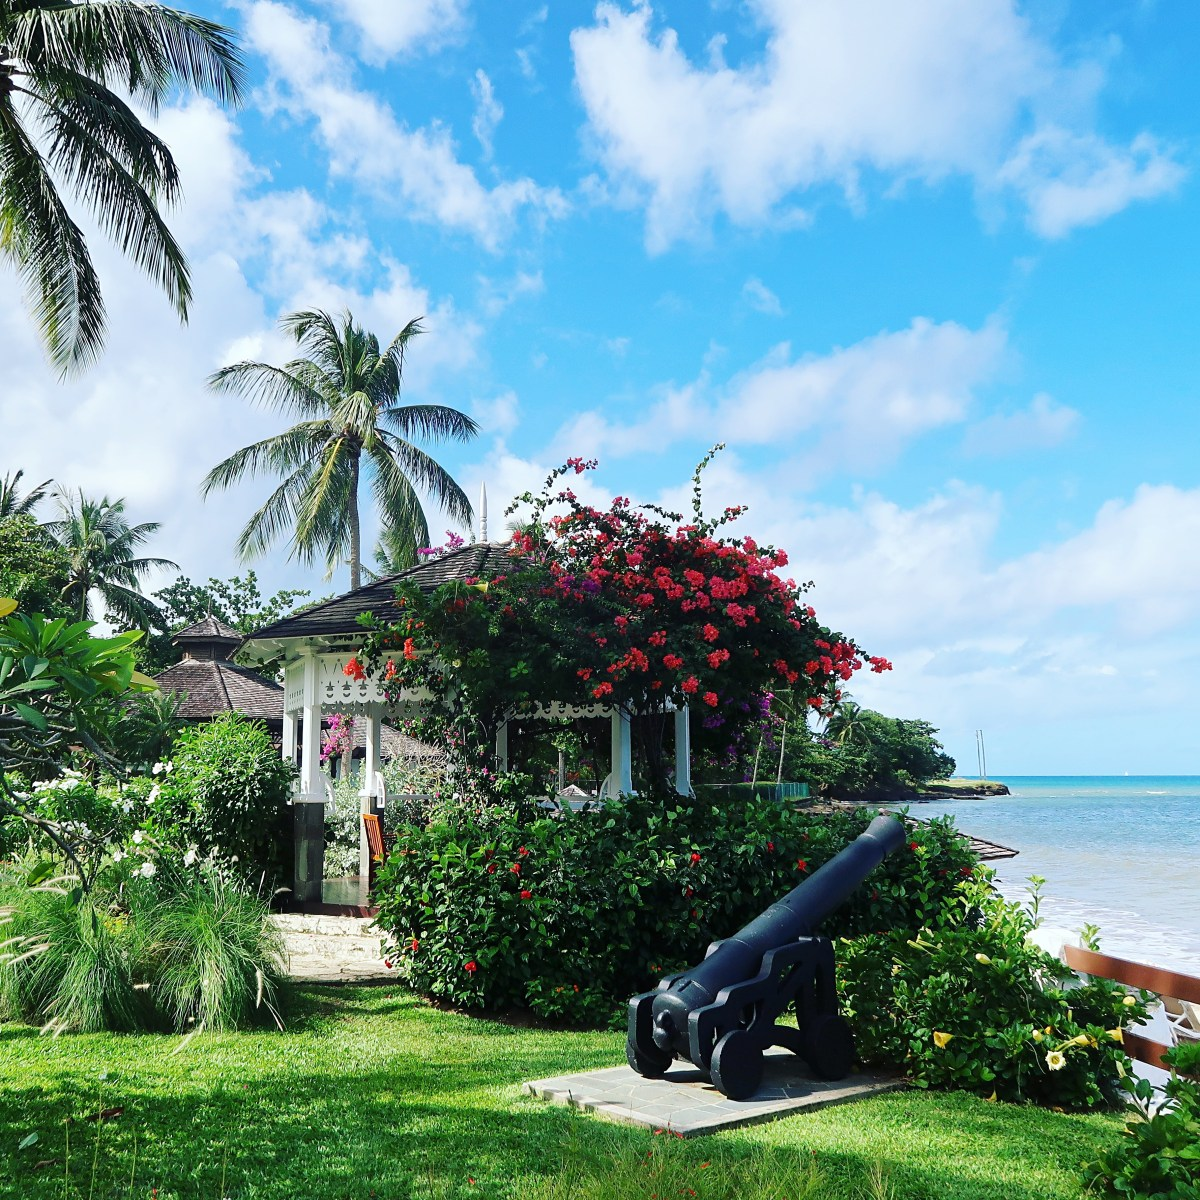 Sandals Halcyon Beach Resort Review - Travel Blogger The LDN Diaries